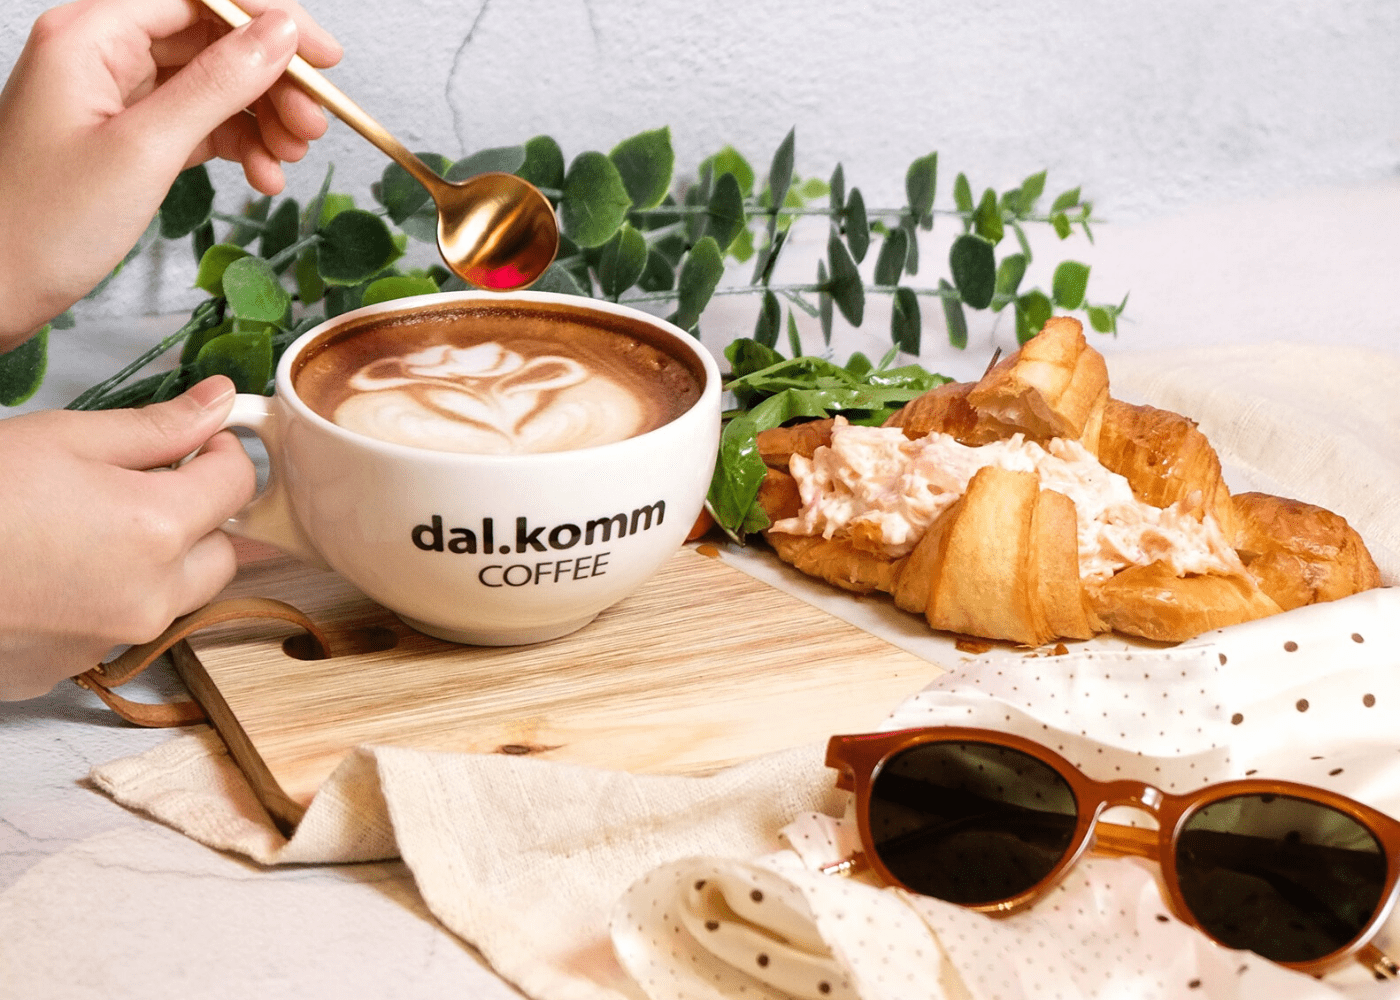 dal.komm coffee | Cafes in Singapore with free wifi | coffee with croissant